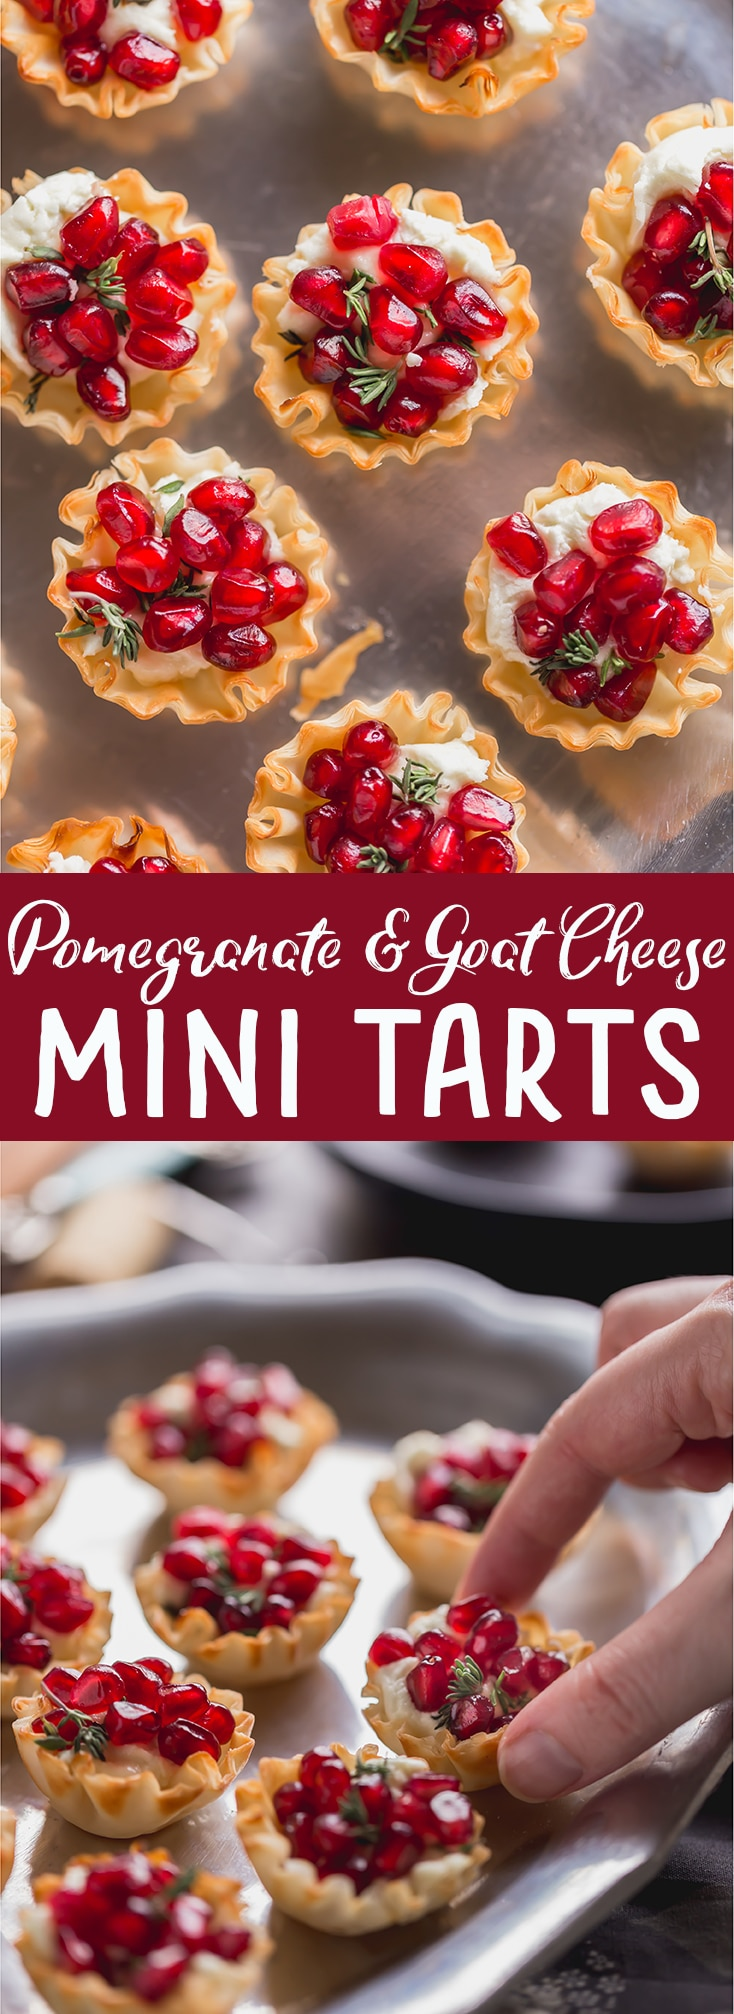 These Pomegranate Goat Cheese Bites with Honey and Thyme are an easy holiday appetizer that is sure to impress your guests! | easy party appetizer | phyllo bite recipe | Phyllo dough recipe | mini phyllo shells appetizers | phyllo dough hors d'oeuvres recipes | finger foods | holiday appetizer recipe | elegant party appetizer | girls night | apps | new years eve party recipe | thanksgiving appetizer |